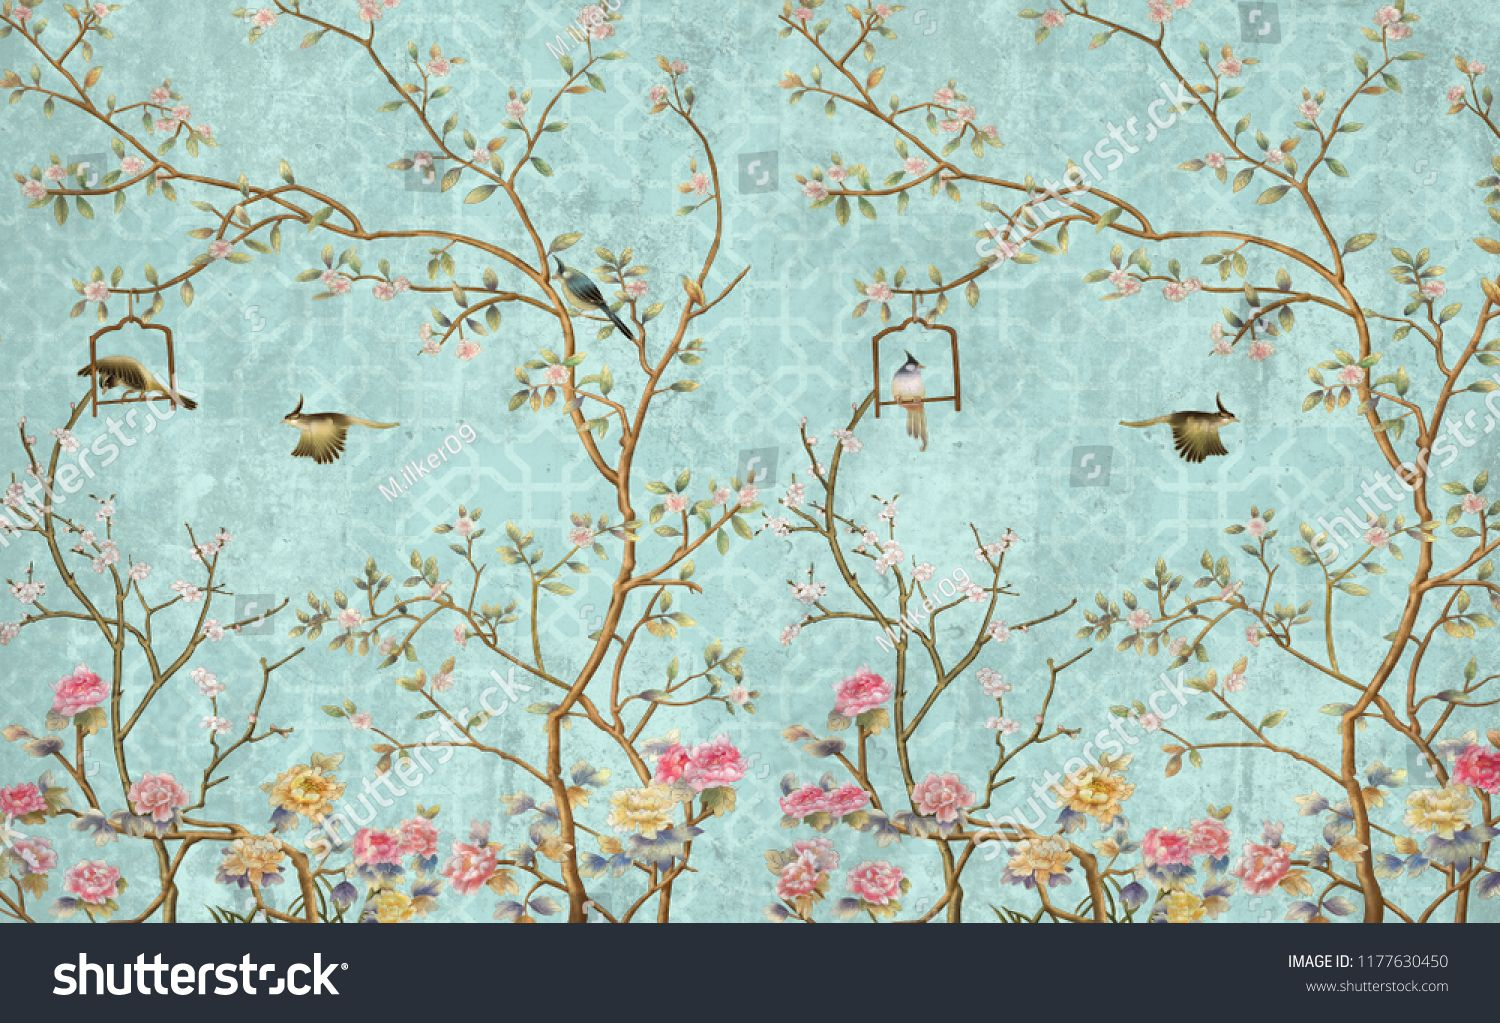 3d Wallpaper Design With Little Flowers And Birds For Photomural Design Wallpaper Flowers Photomural Floral Wallpaper 3d Wallpaper Design Mural Wallpaper